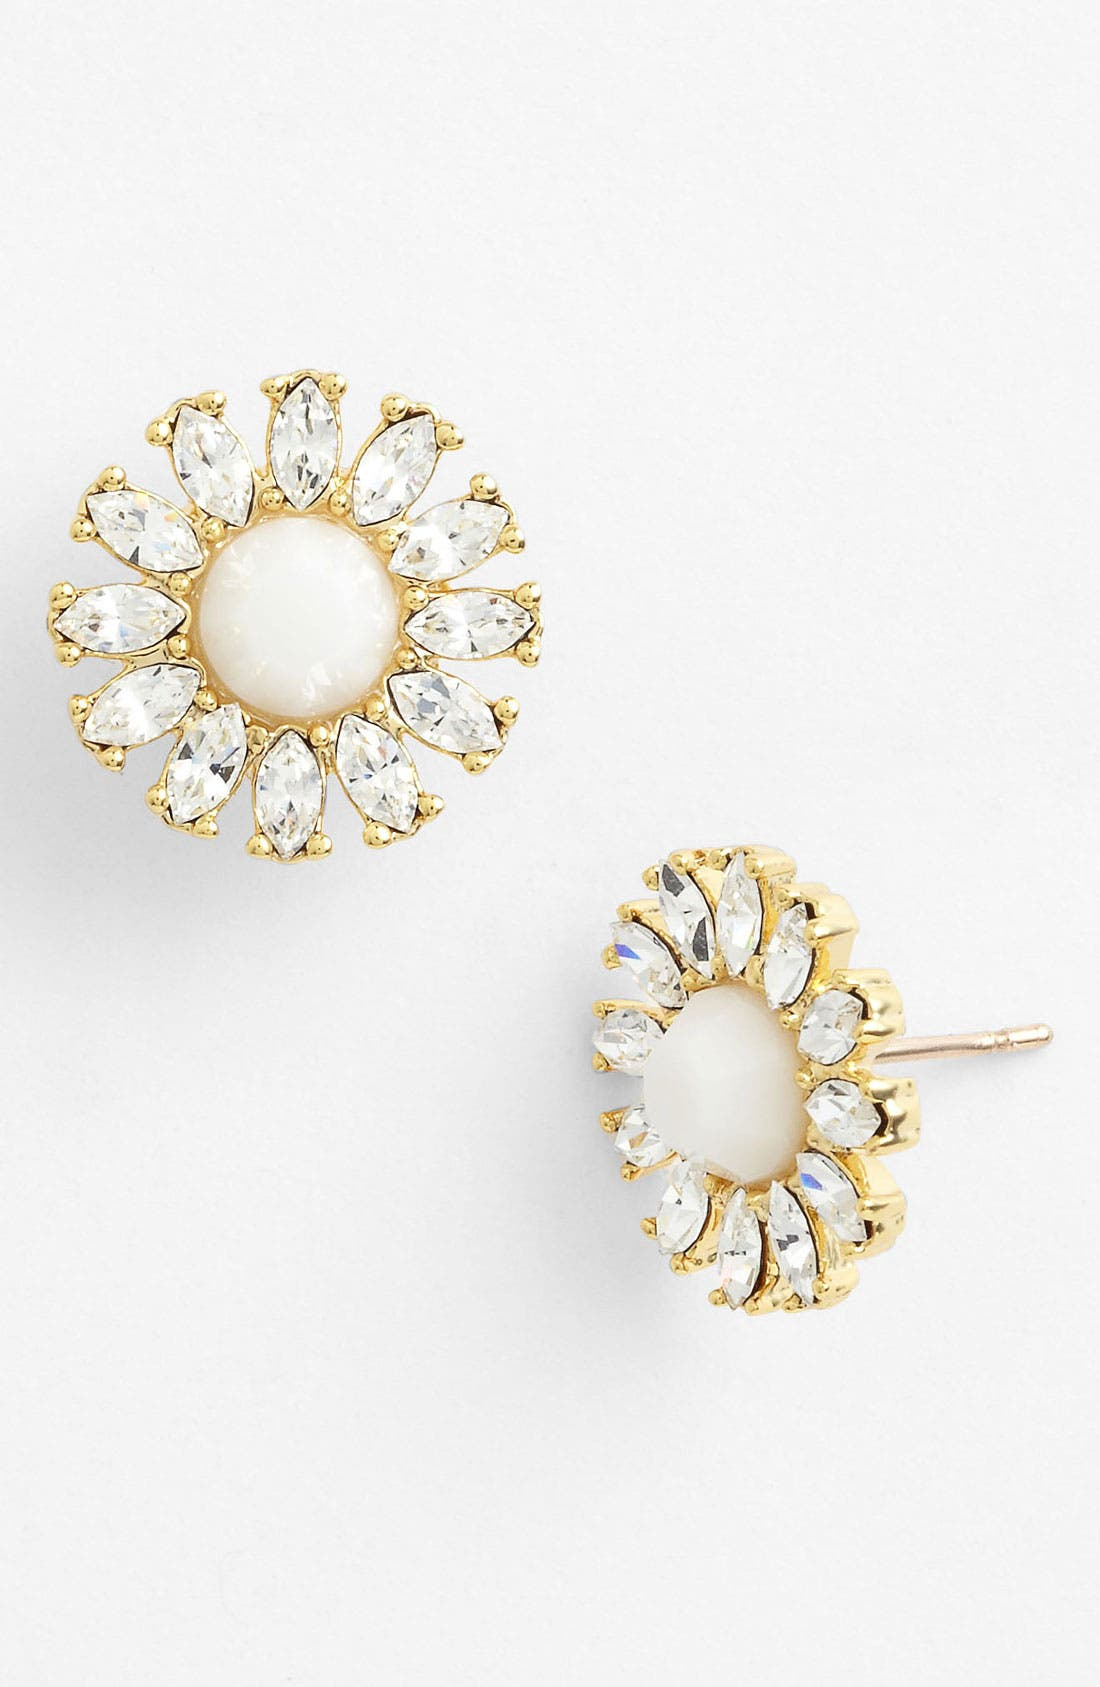 Main Image - kate spade new york 'estate garden' stud earrings